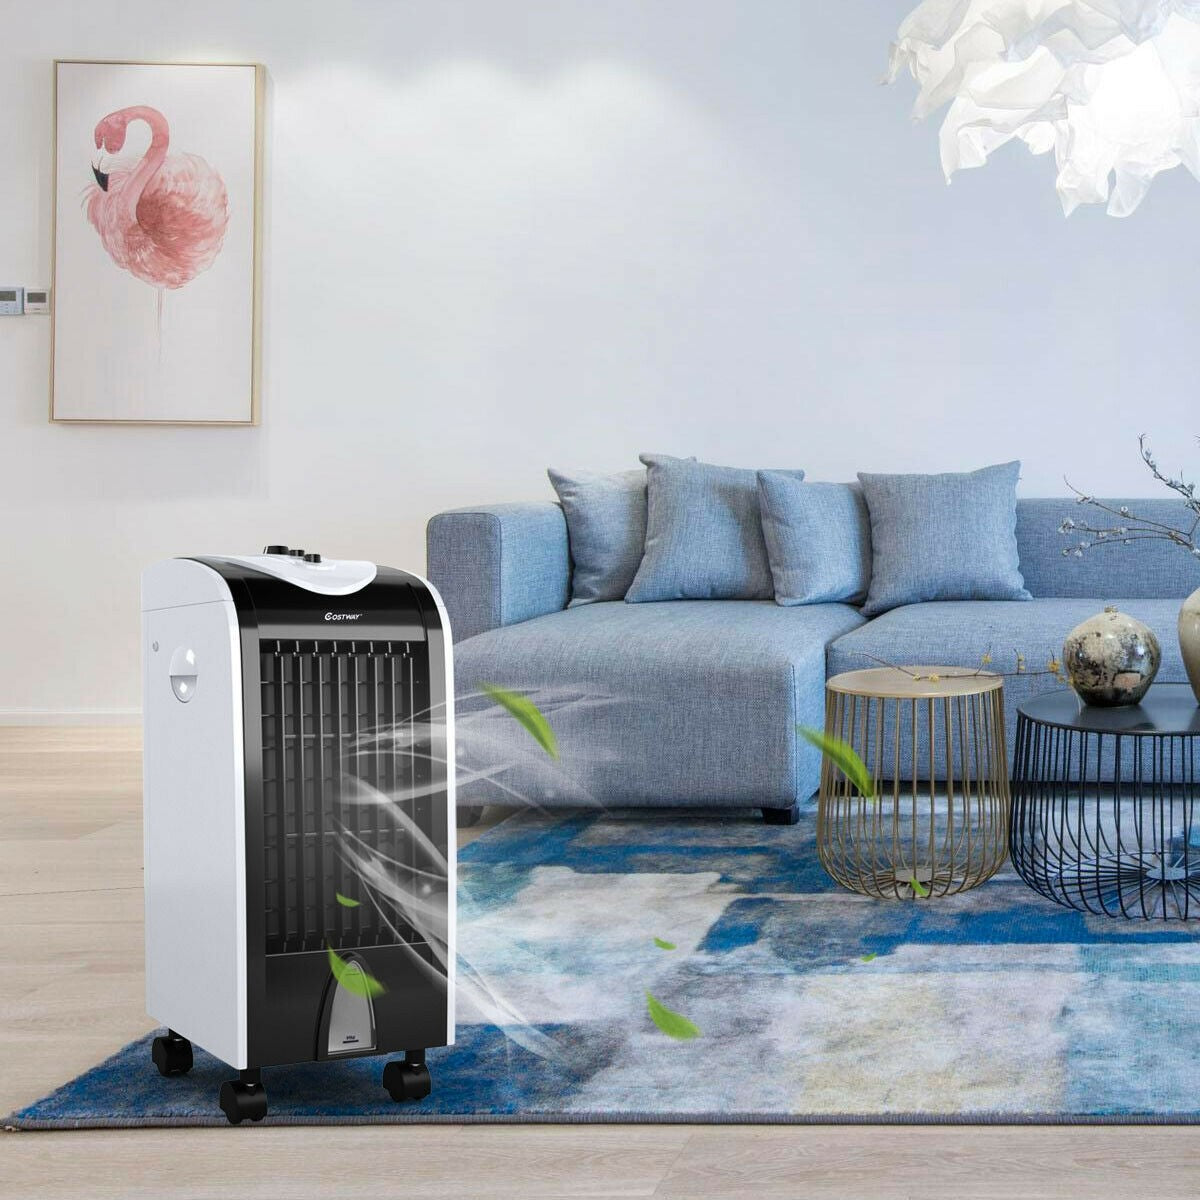 Portable air conditioner unit and ice cold a/c unit